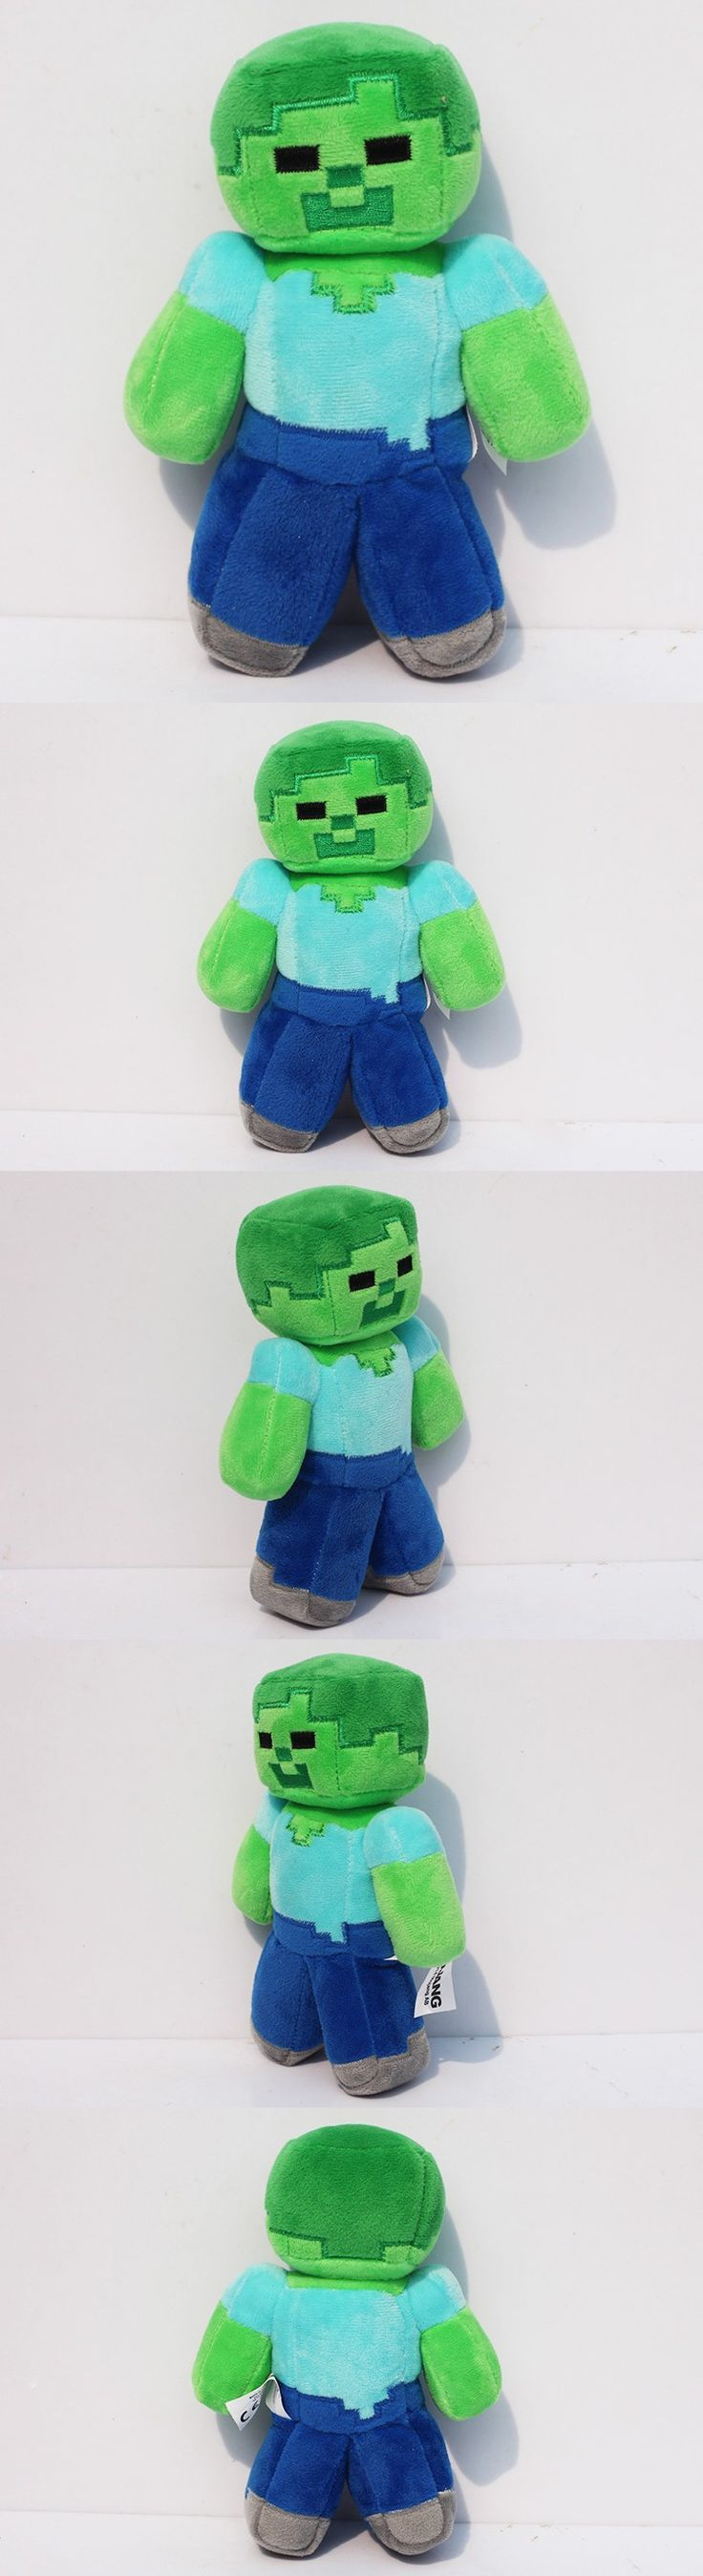 113 best Minecraft Action Figures and Plush Toys images on